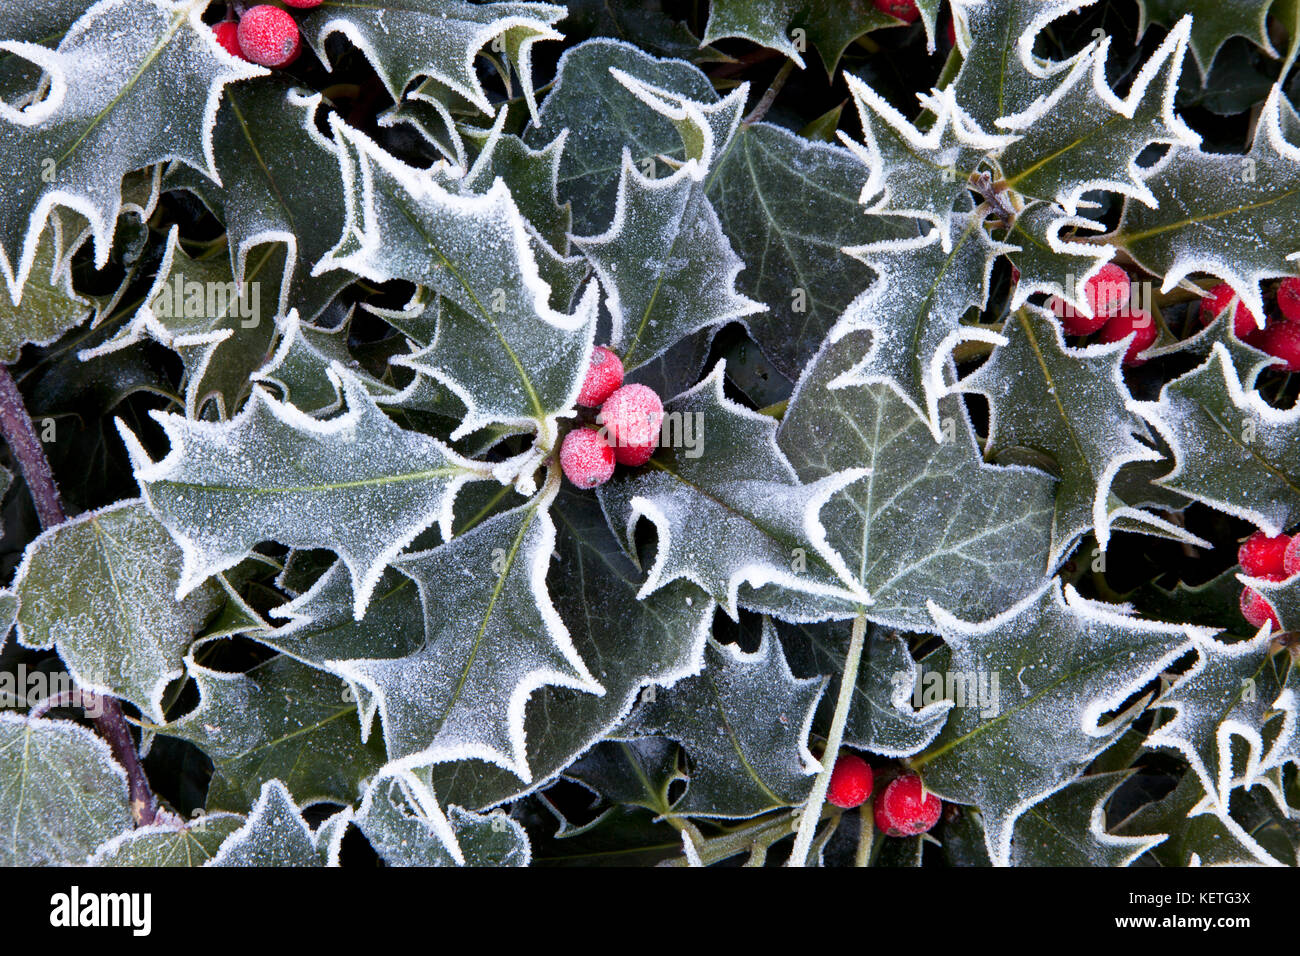 Frosted holly and ivy leaves and holly berries. - Stock Image